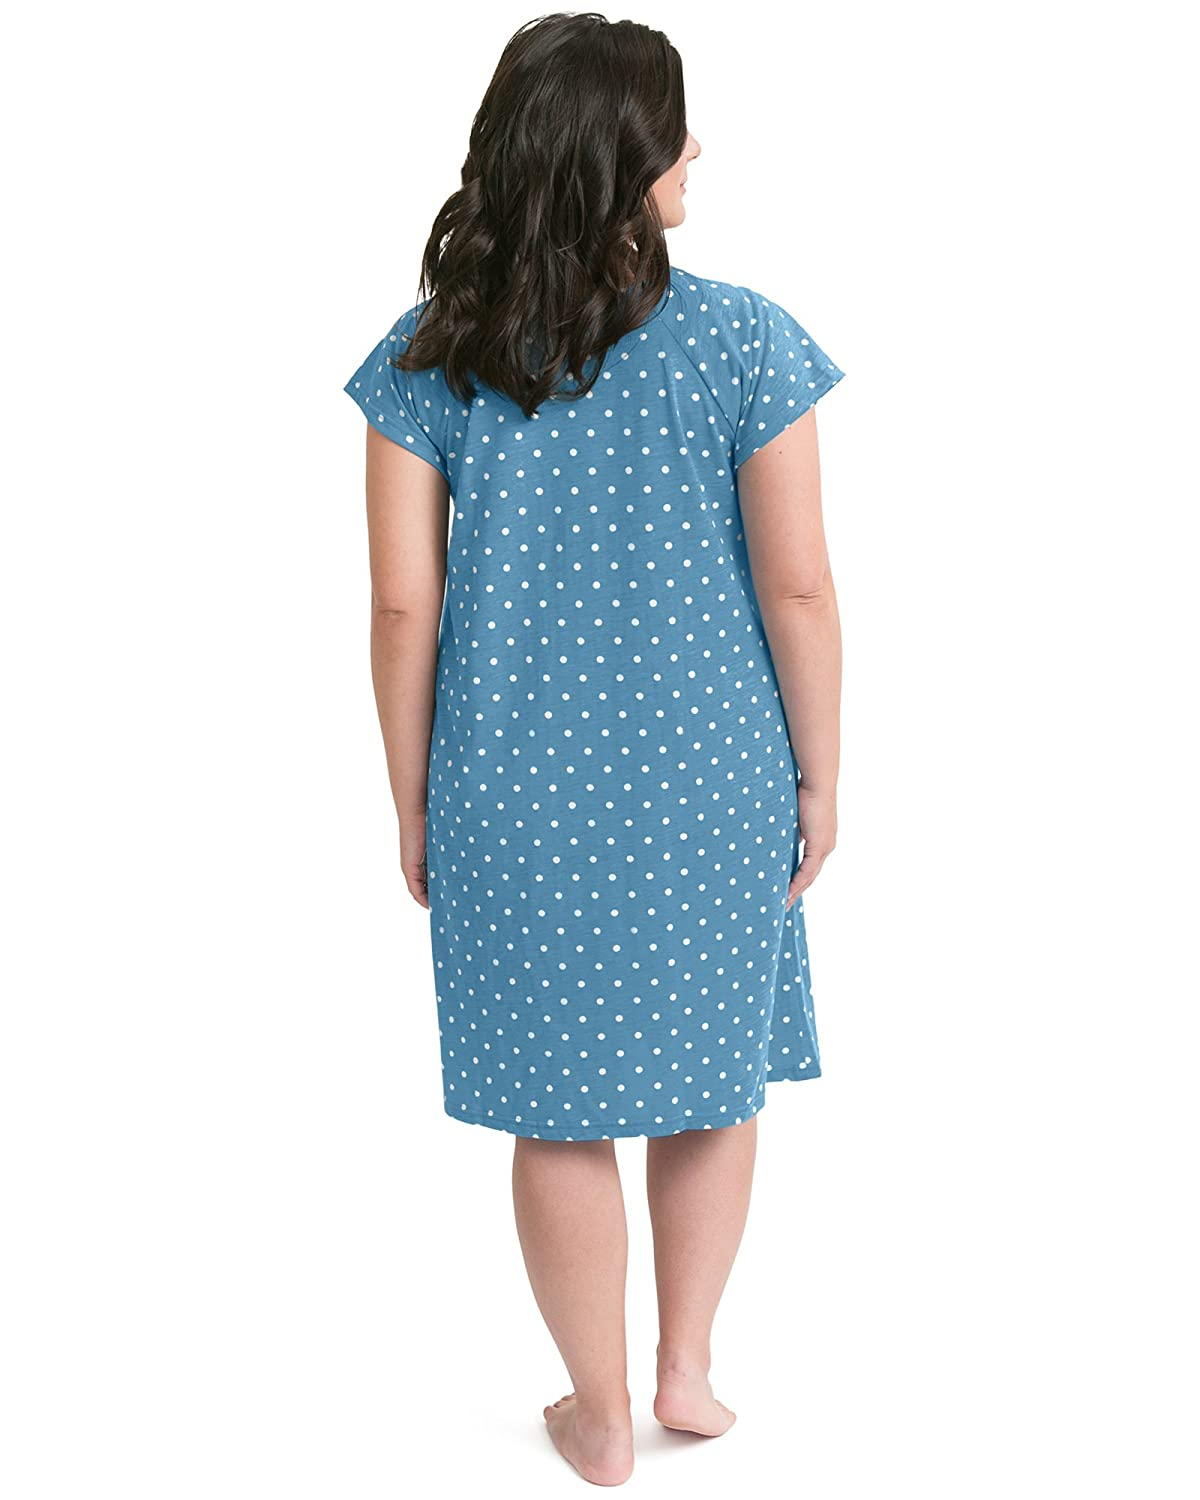 Kindred Bravely Bravely Labor and delivery Gown - The Perfect Baby ...